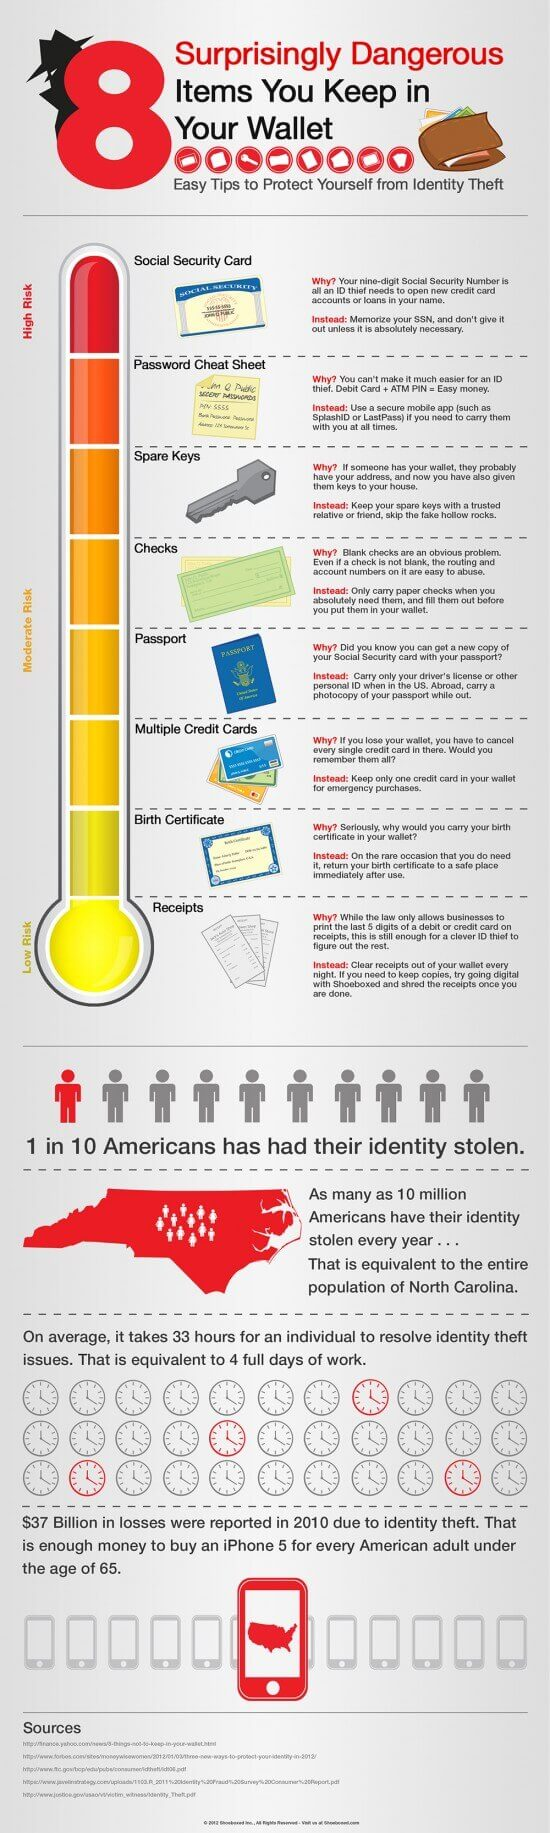 8_surprisingly_dangerous_items_you_keep_in_your_wallet_infographic-1000px1